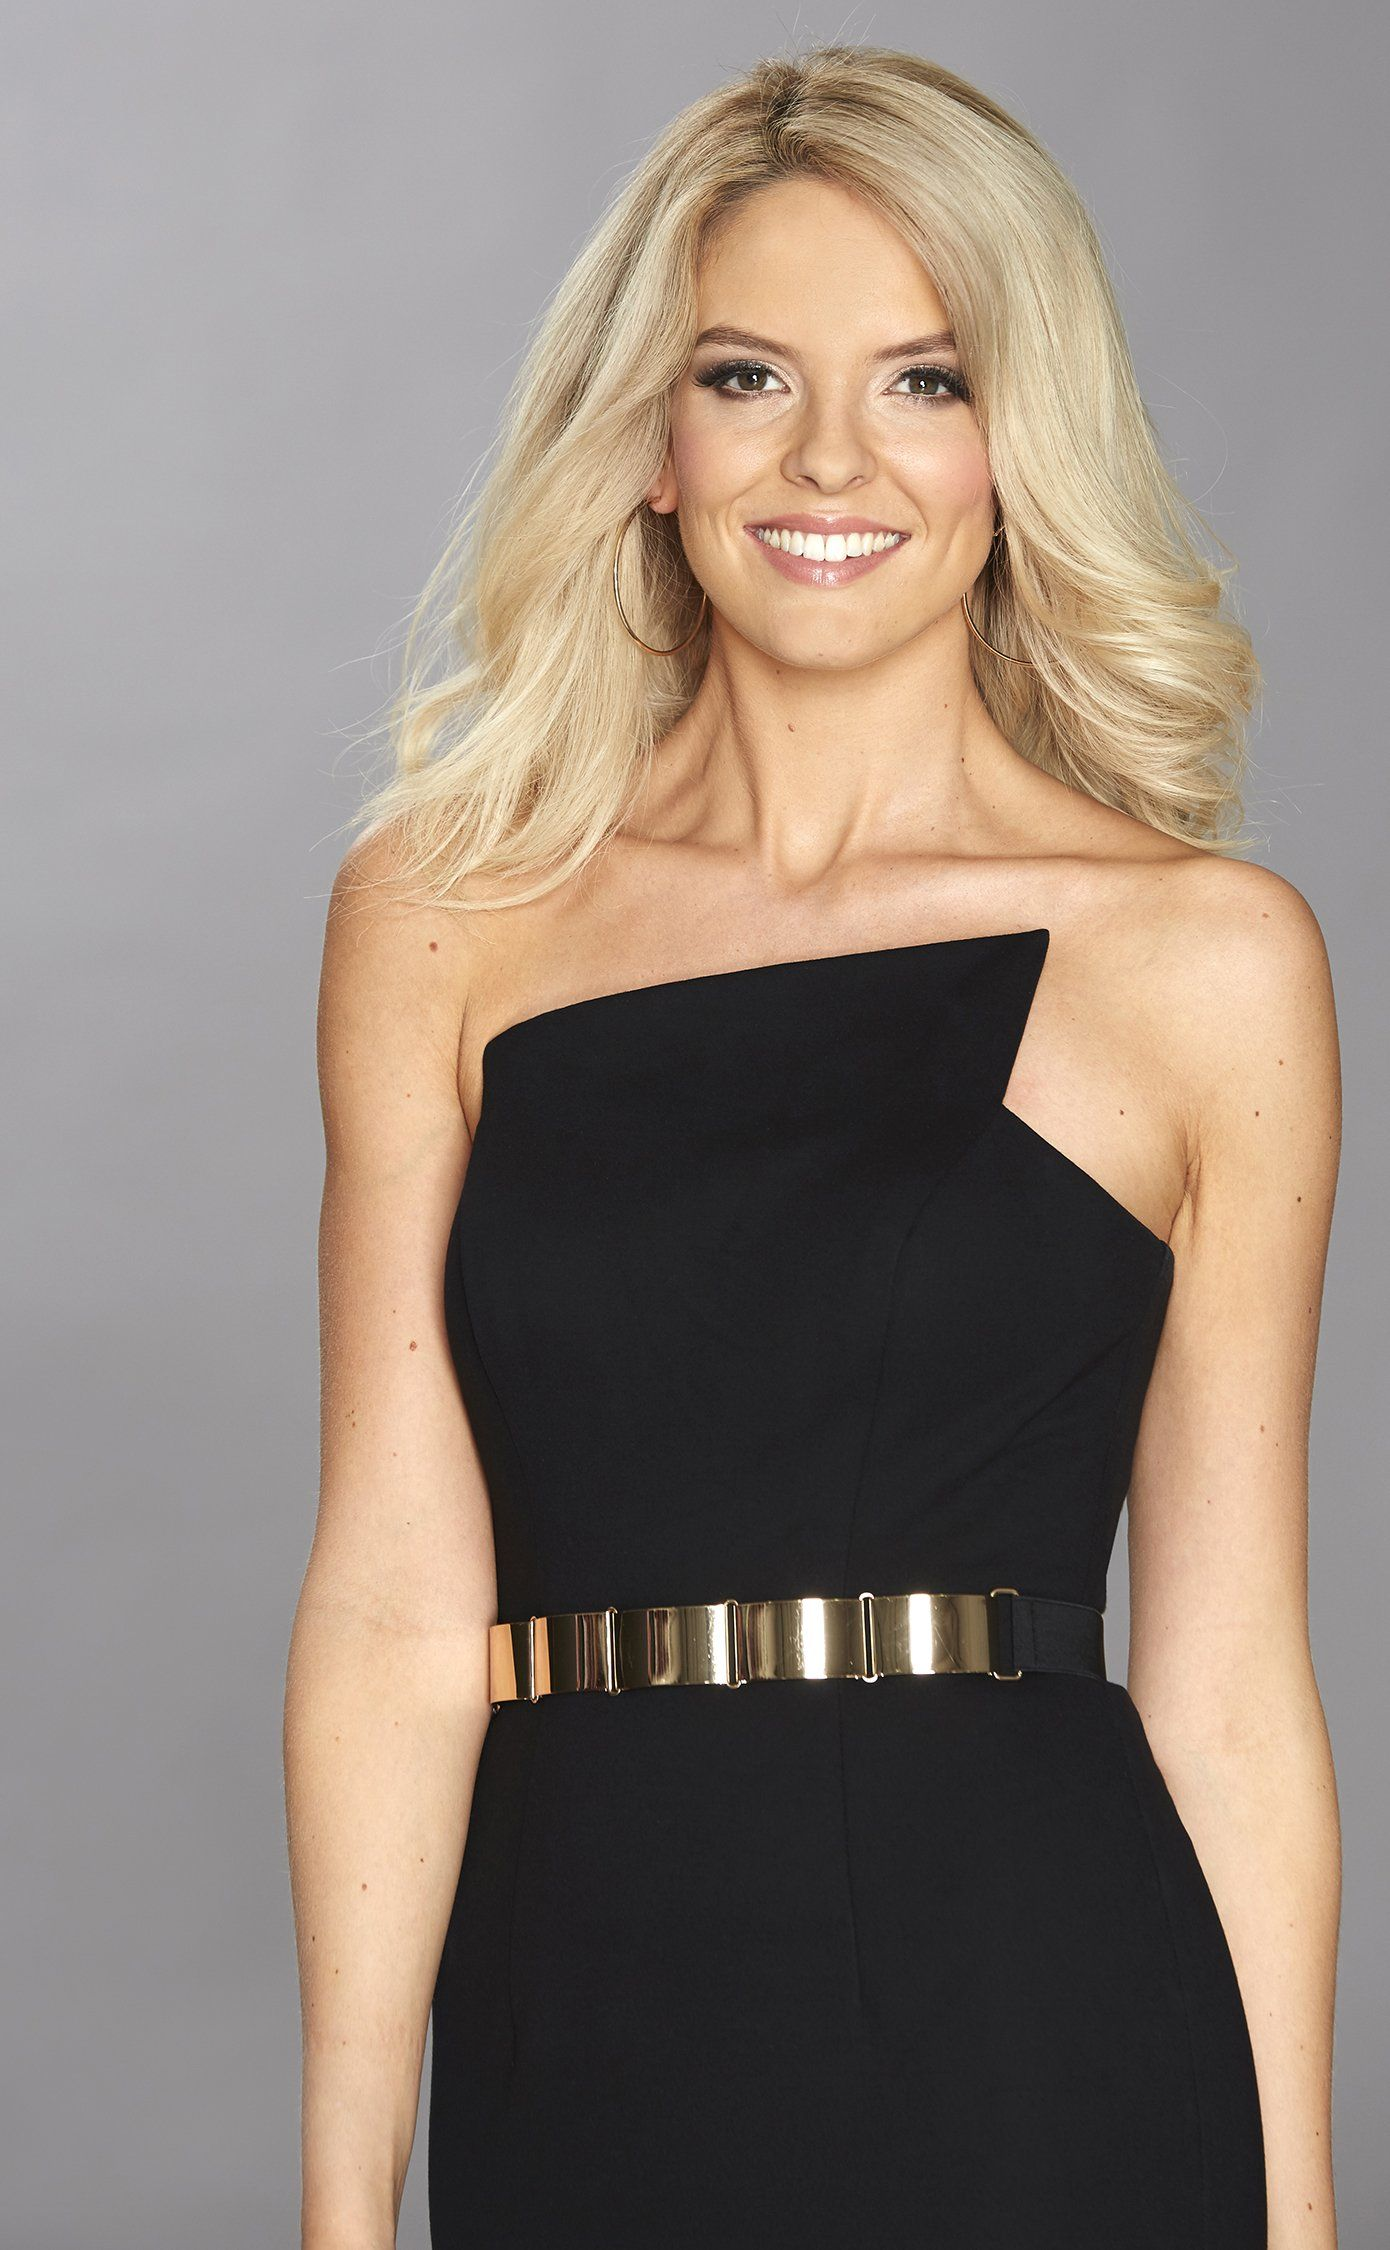 Margot Black Evening Dress in the style of Tess Daly